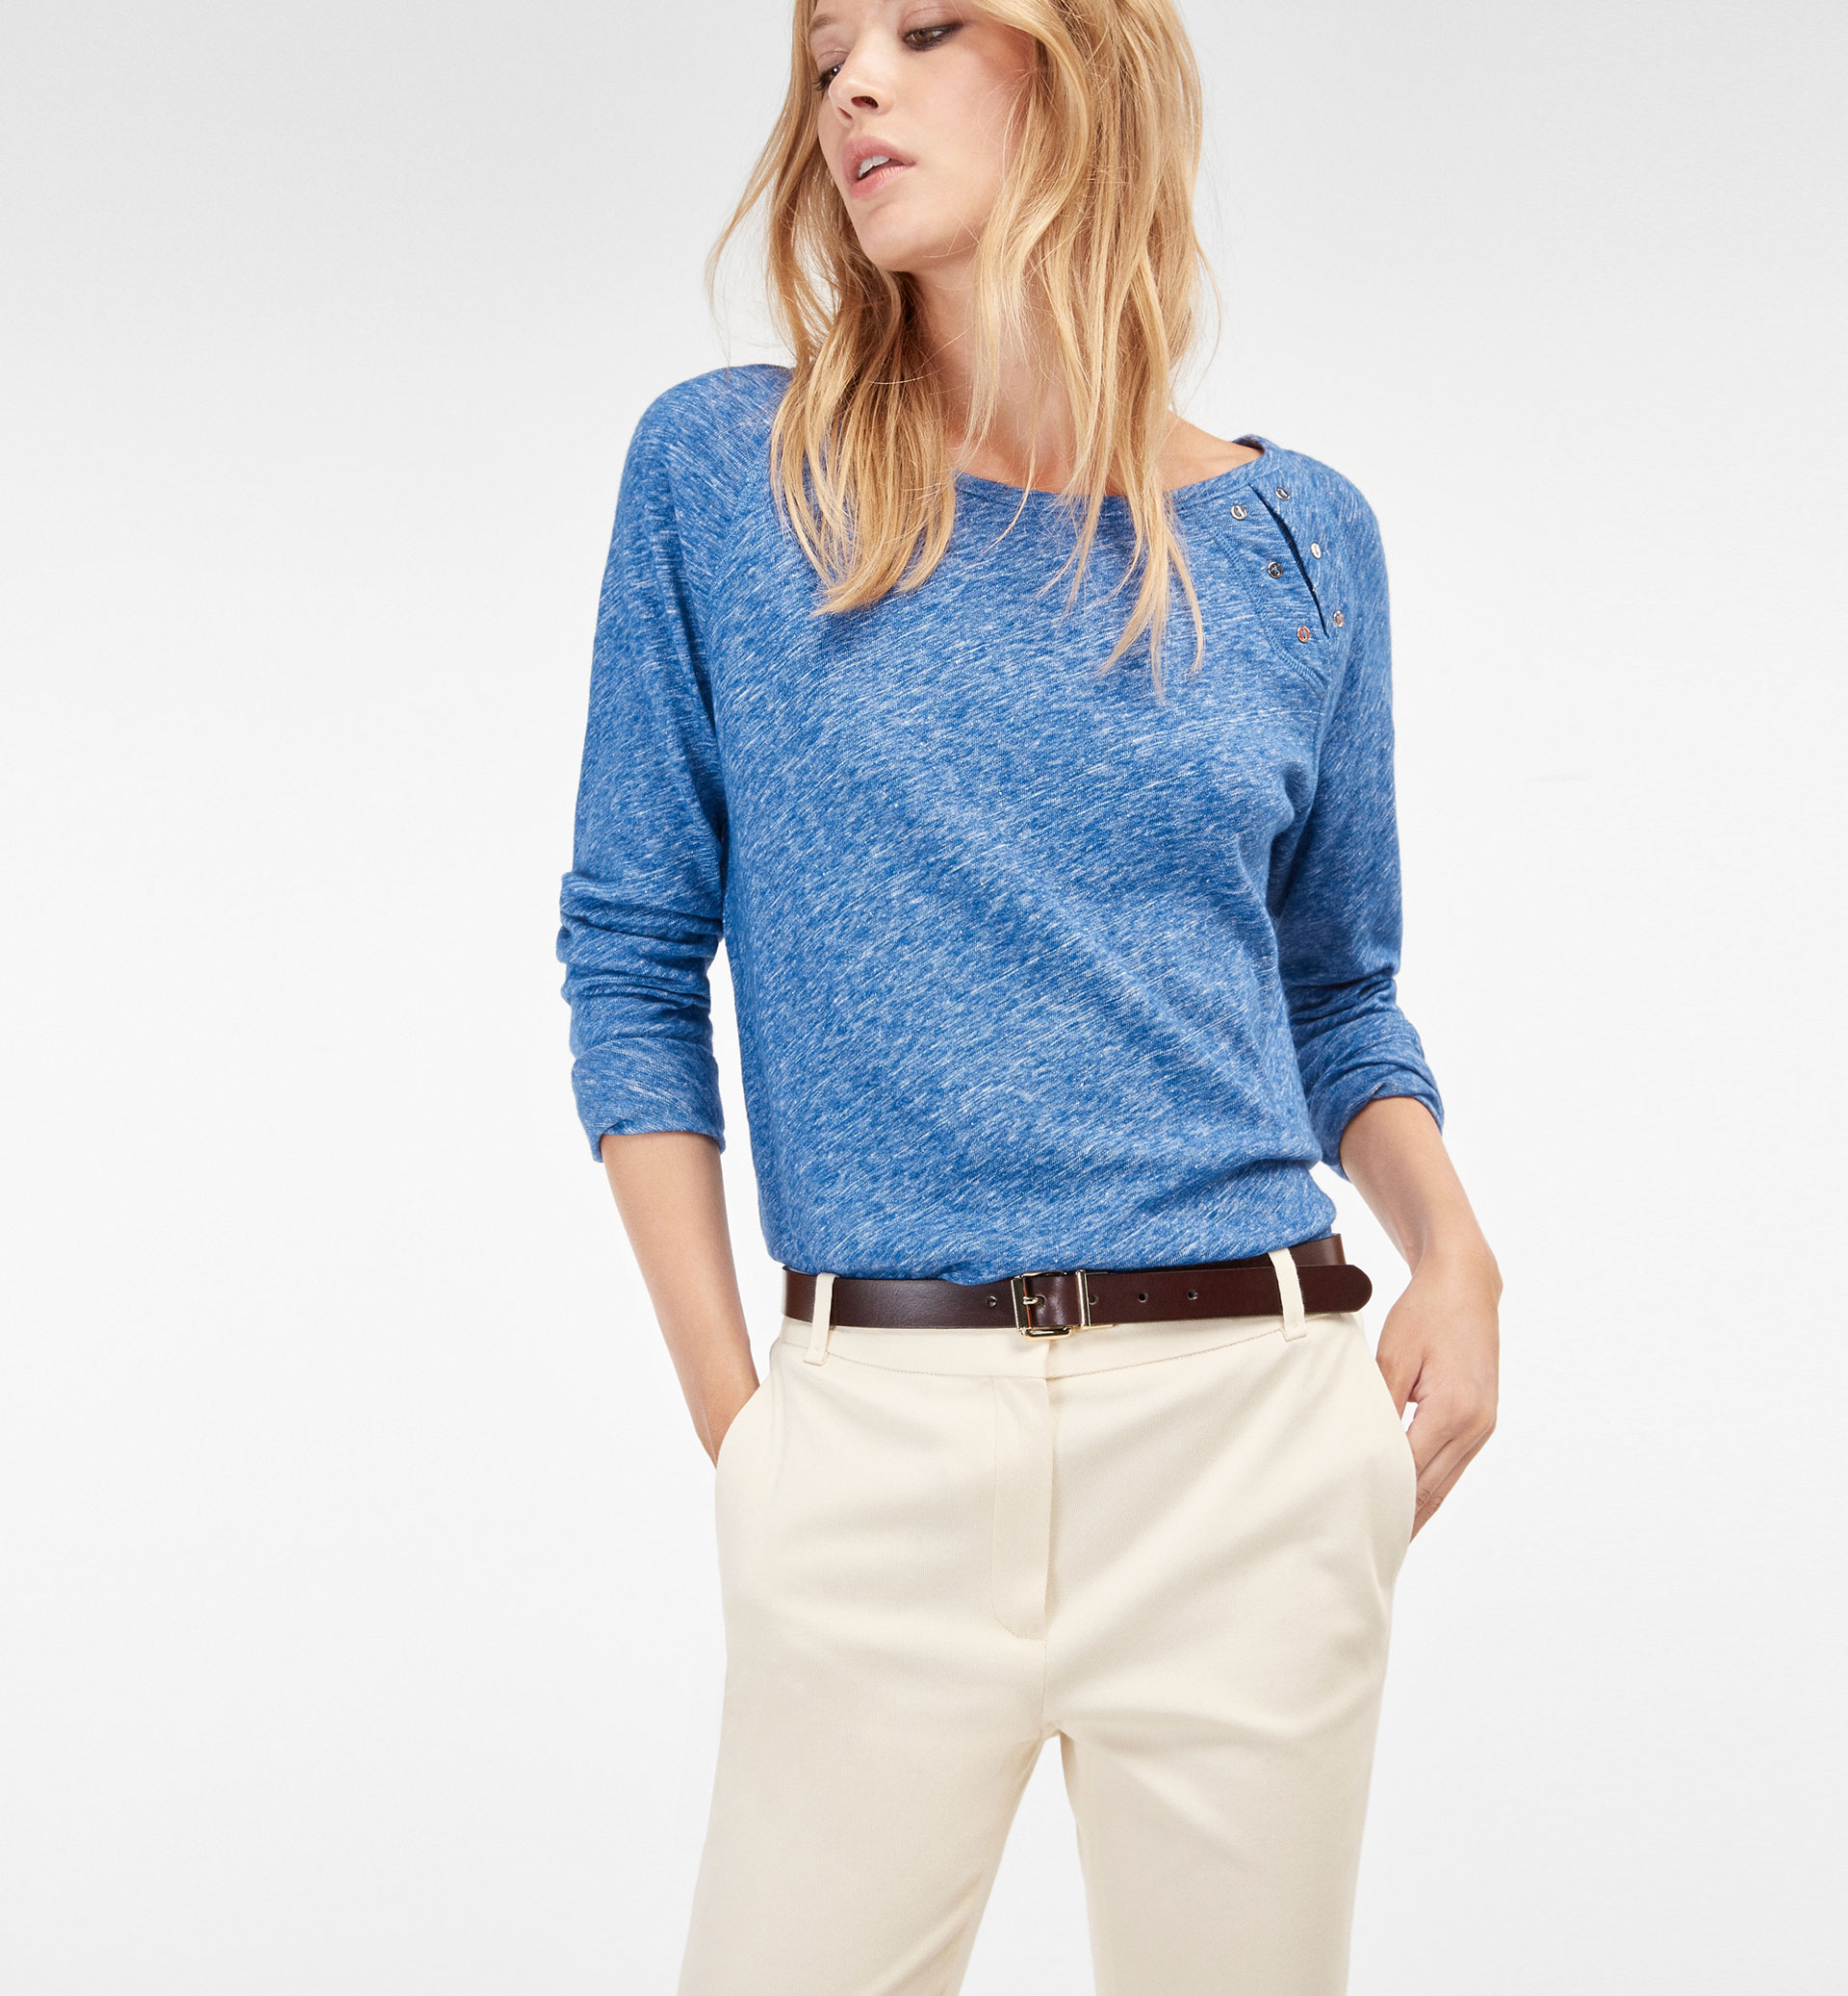 FLECKED BUTTONED T-SHIRT WITH SLIT DETAIL